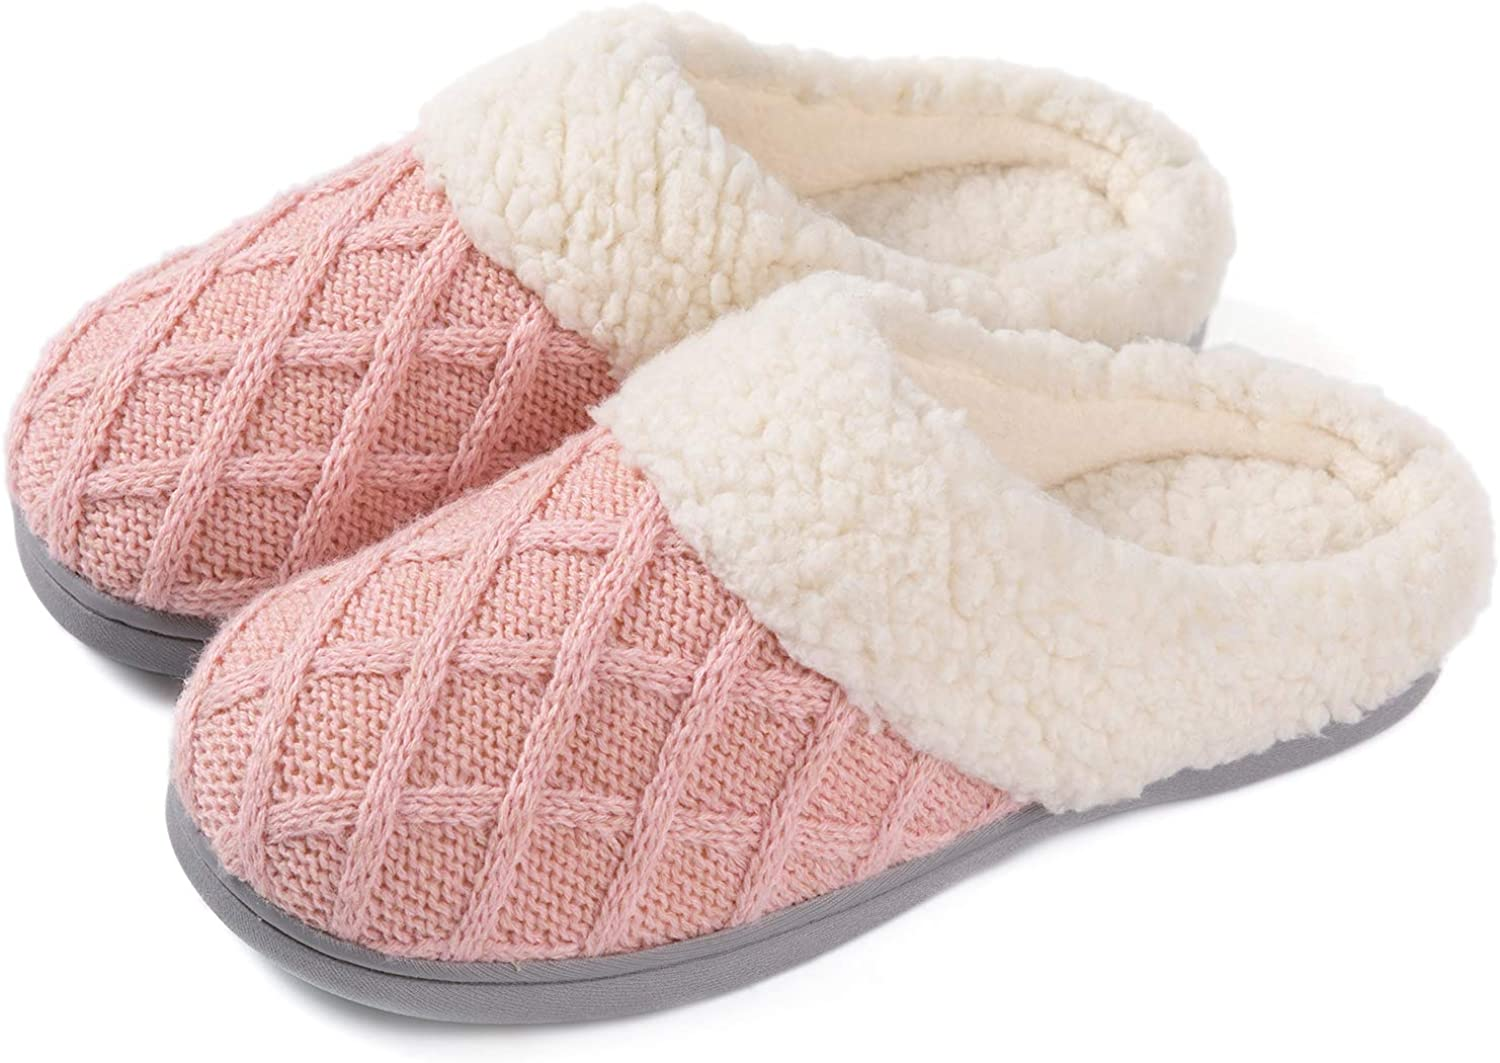 Girls Memory Foam Slippers Mule Slip in a Gift Box